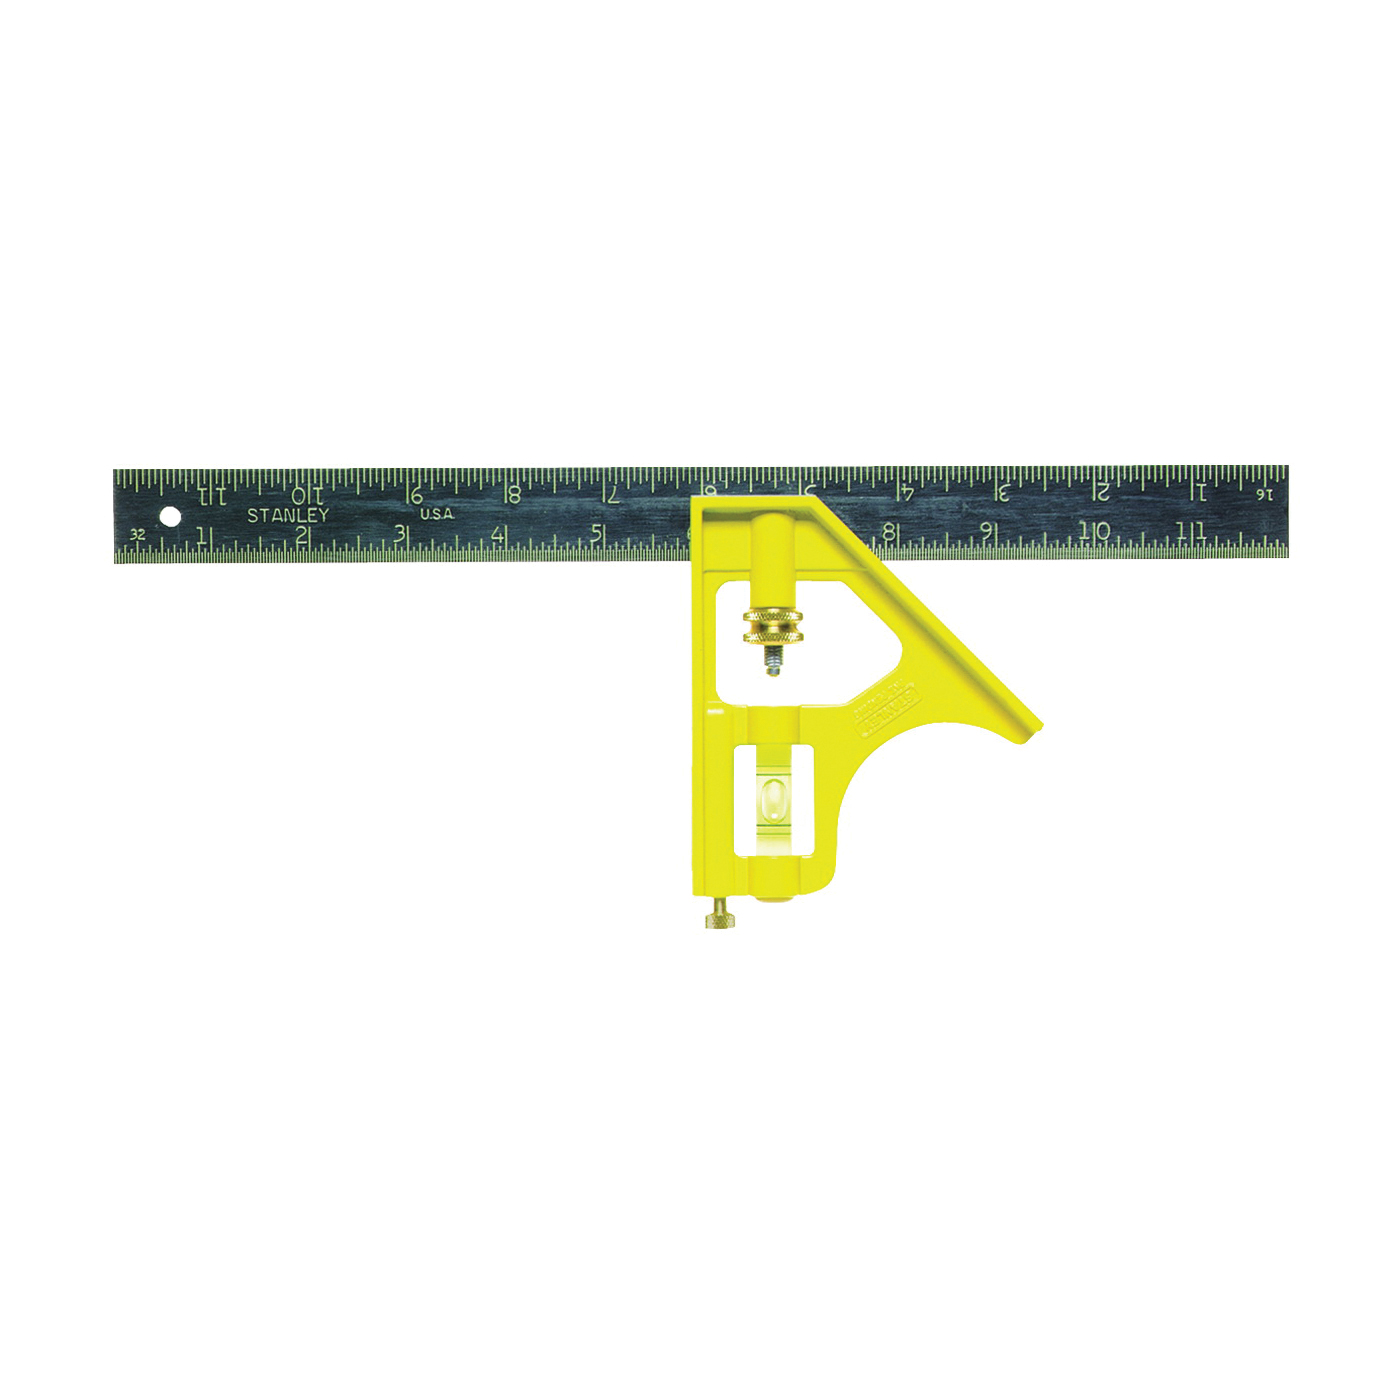 Picture of STANLEY 46-123 Combination Square, 12 in L Blade, SAE Graduation, Steel Blade